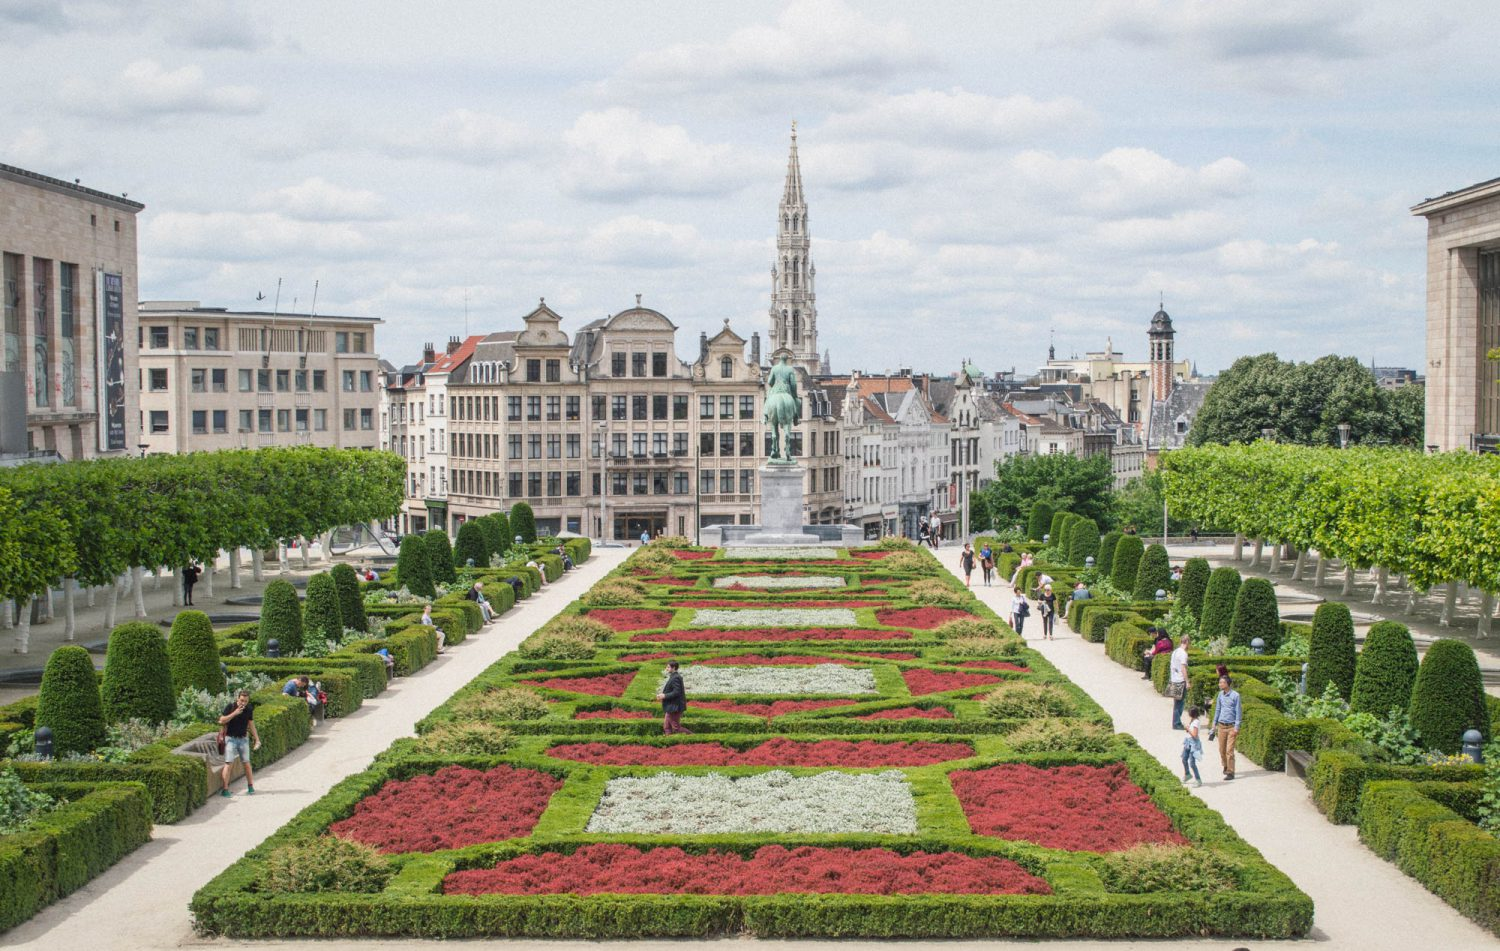 View of Mont des Arts in Brussels, Belgium